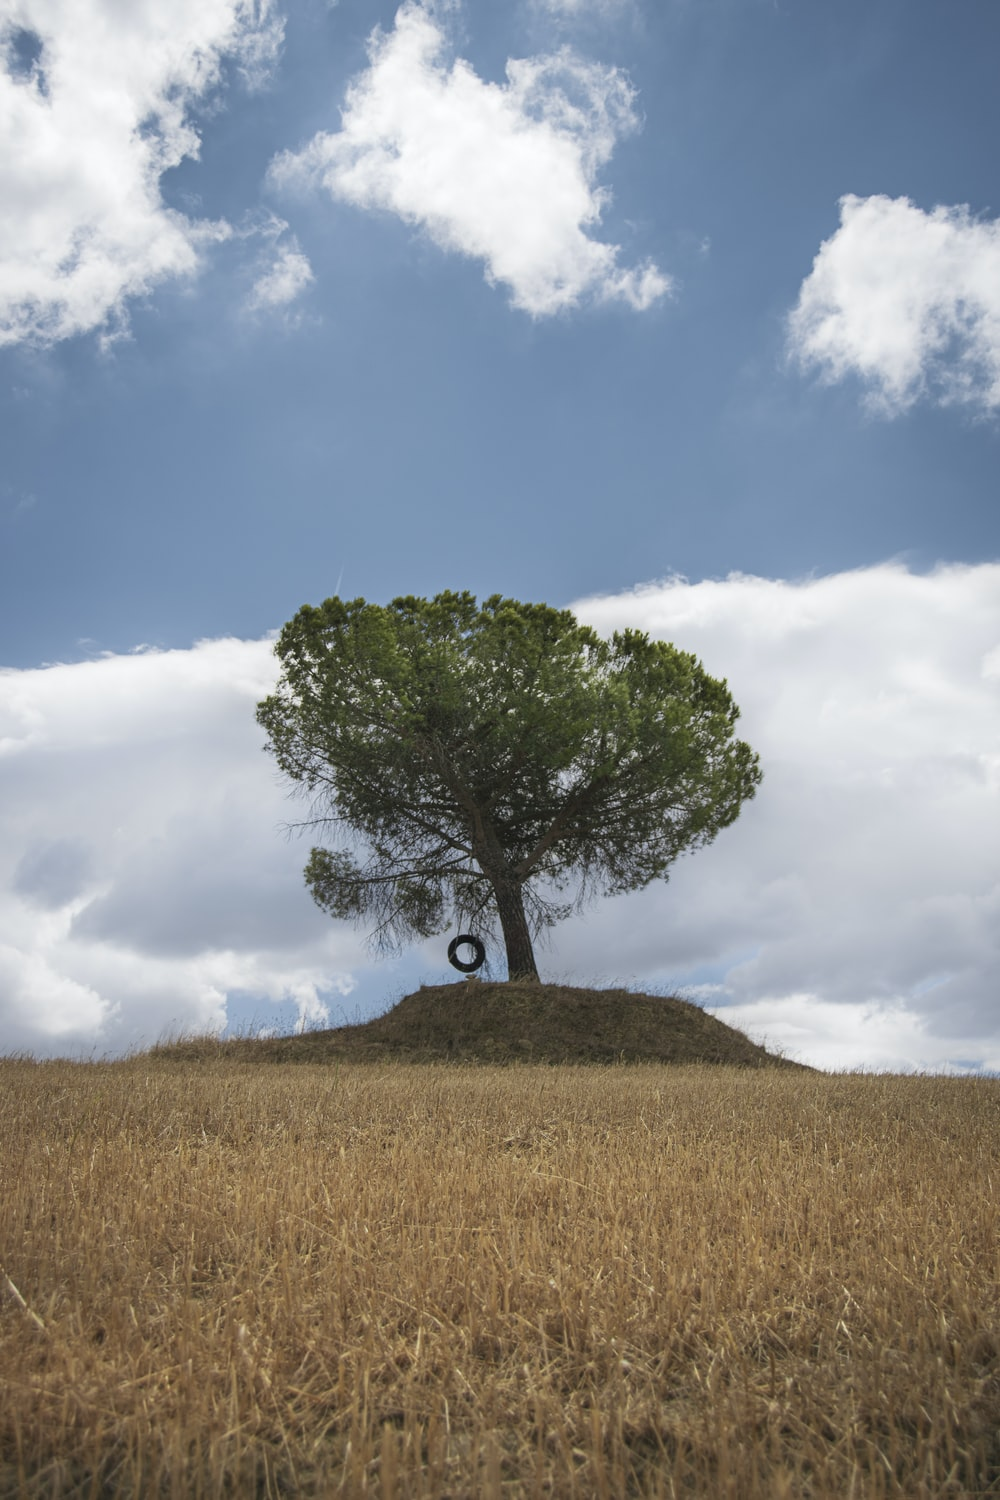 green tree on brown grass field under white clouds and blue sky during daytime